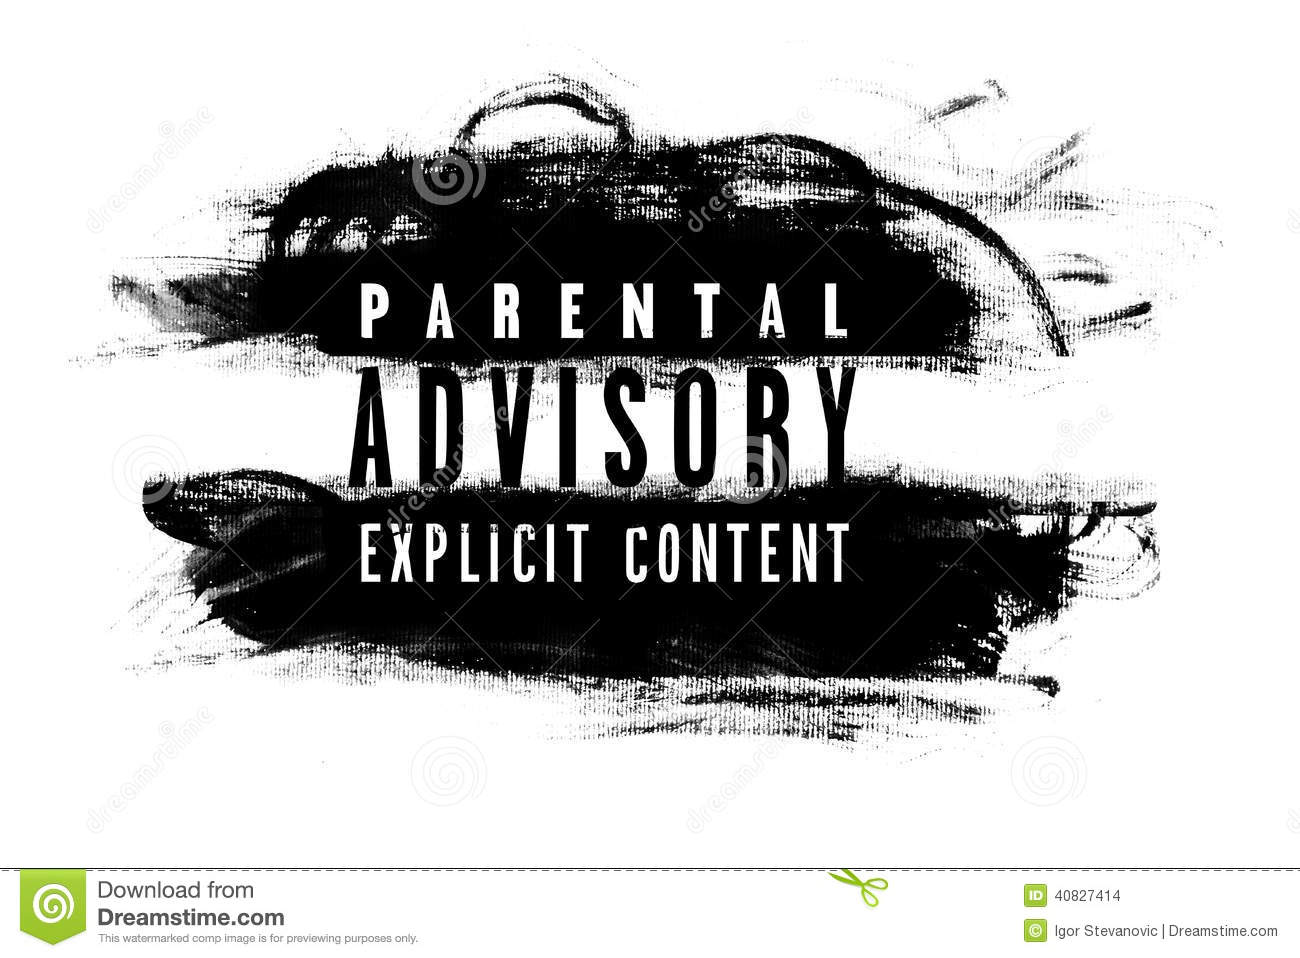 parental advisory on music essay Inappropriate content in music music pushing parental advisory labels in 1990, the us recording industry introduced parent advisory labels to identify music containing explicit lyrics, including depictions of violence and sex.